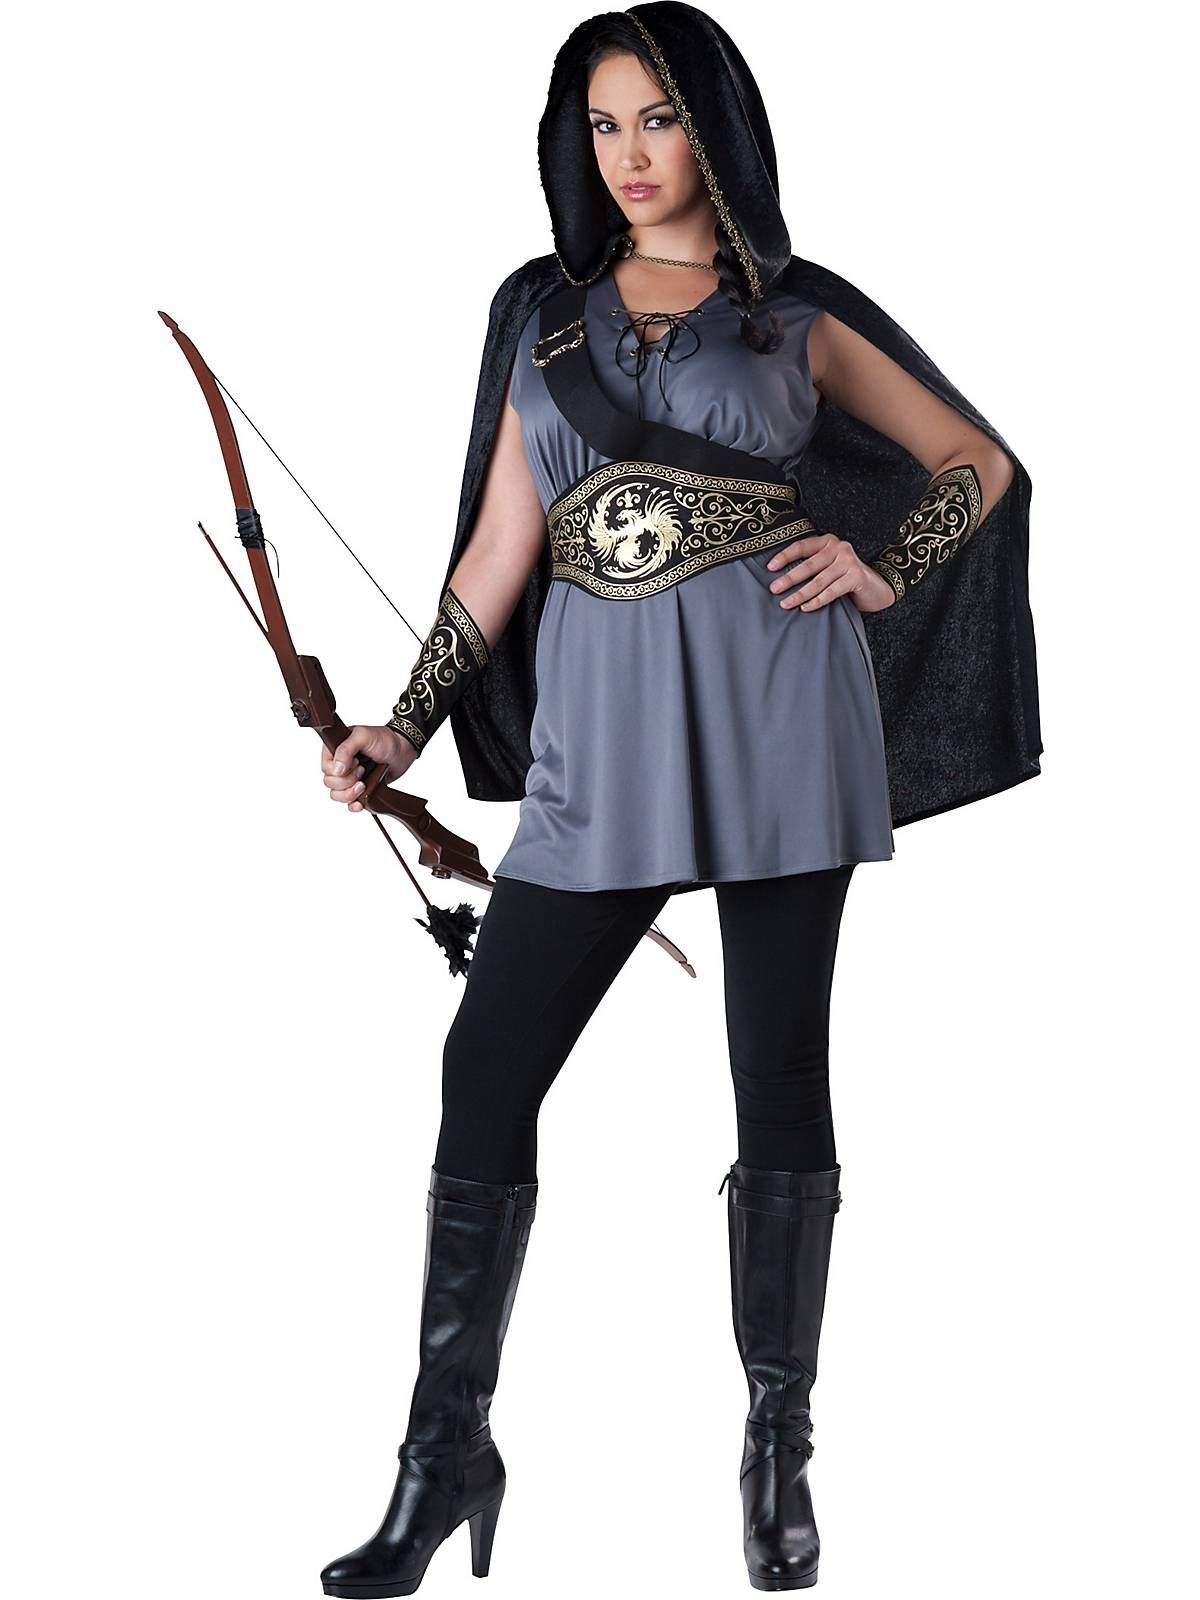 dress to kill this halloween while wearing this huntress plus size